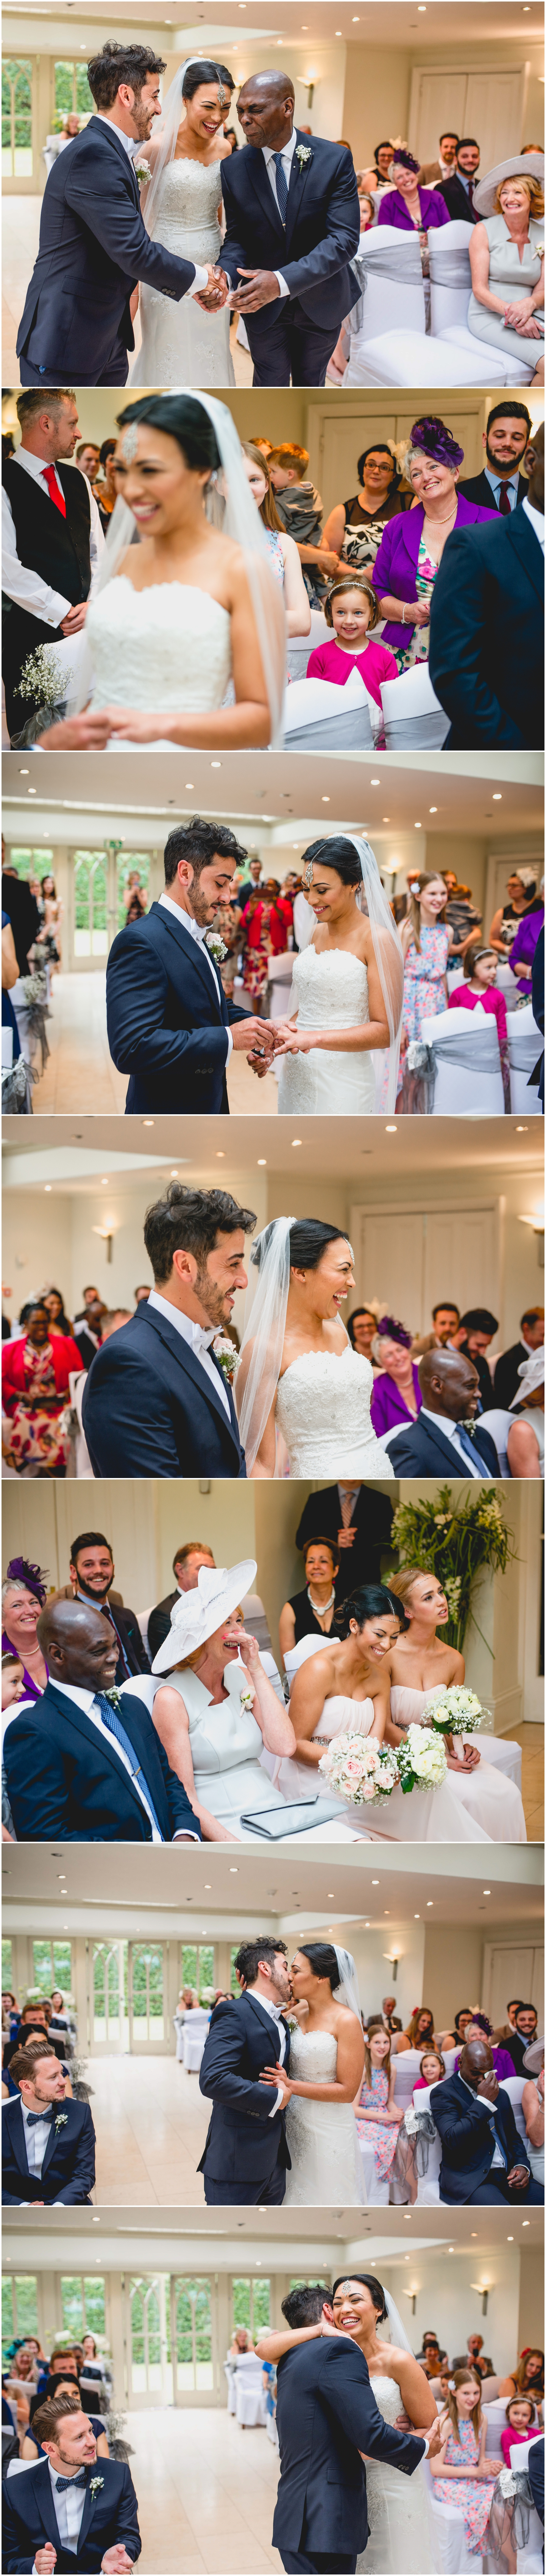 Alice and Nathan's Elegant silver and green themed wedding at The Old Vicarage, Wolverhampton, Wedding photography by Lisa Carpenter Photography, West Midlands based wedding photographer